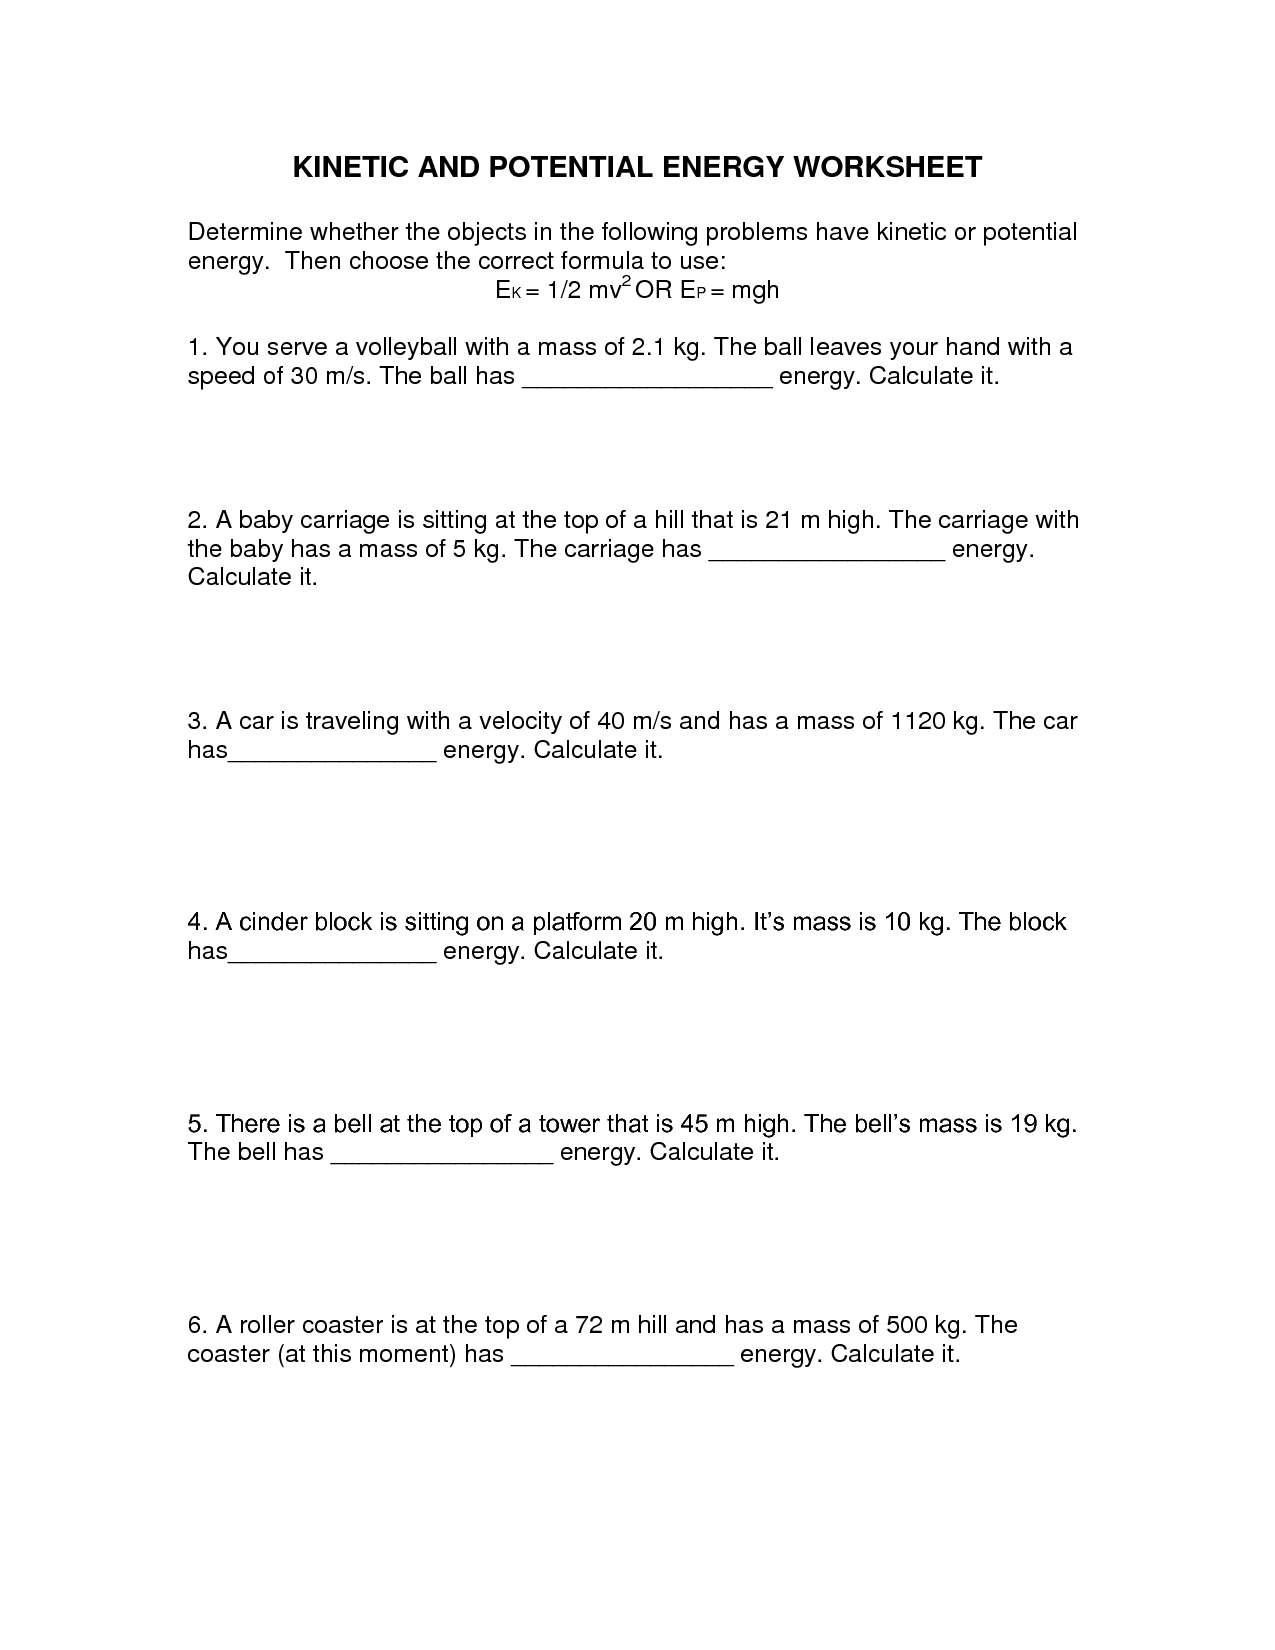 New Elastic Potential Energy Worksheet Middle School